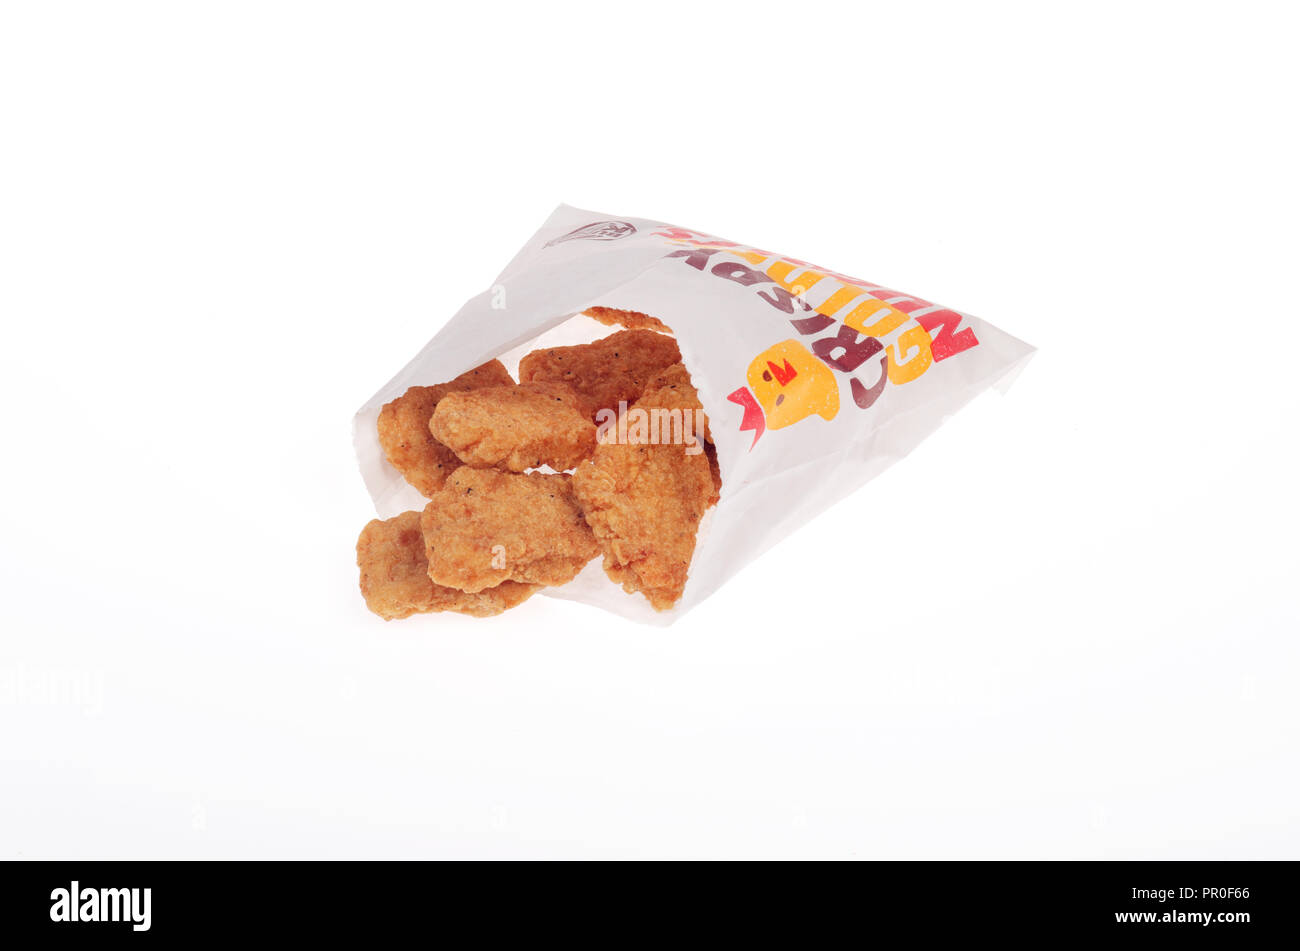 Sachet de Burger King Nuggets de Poulet Photo Stock